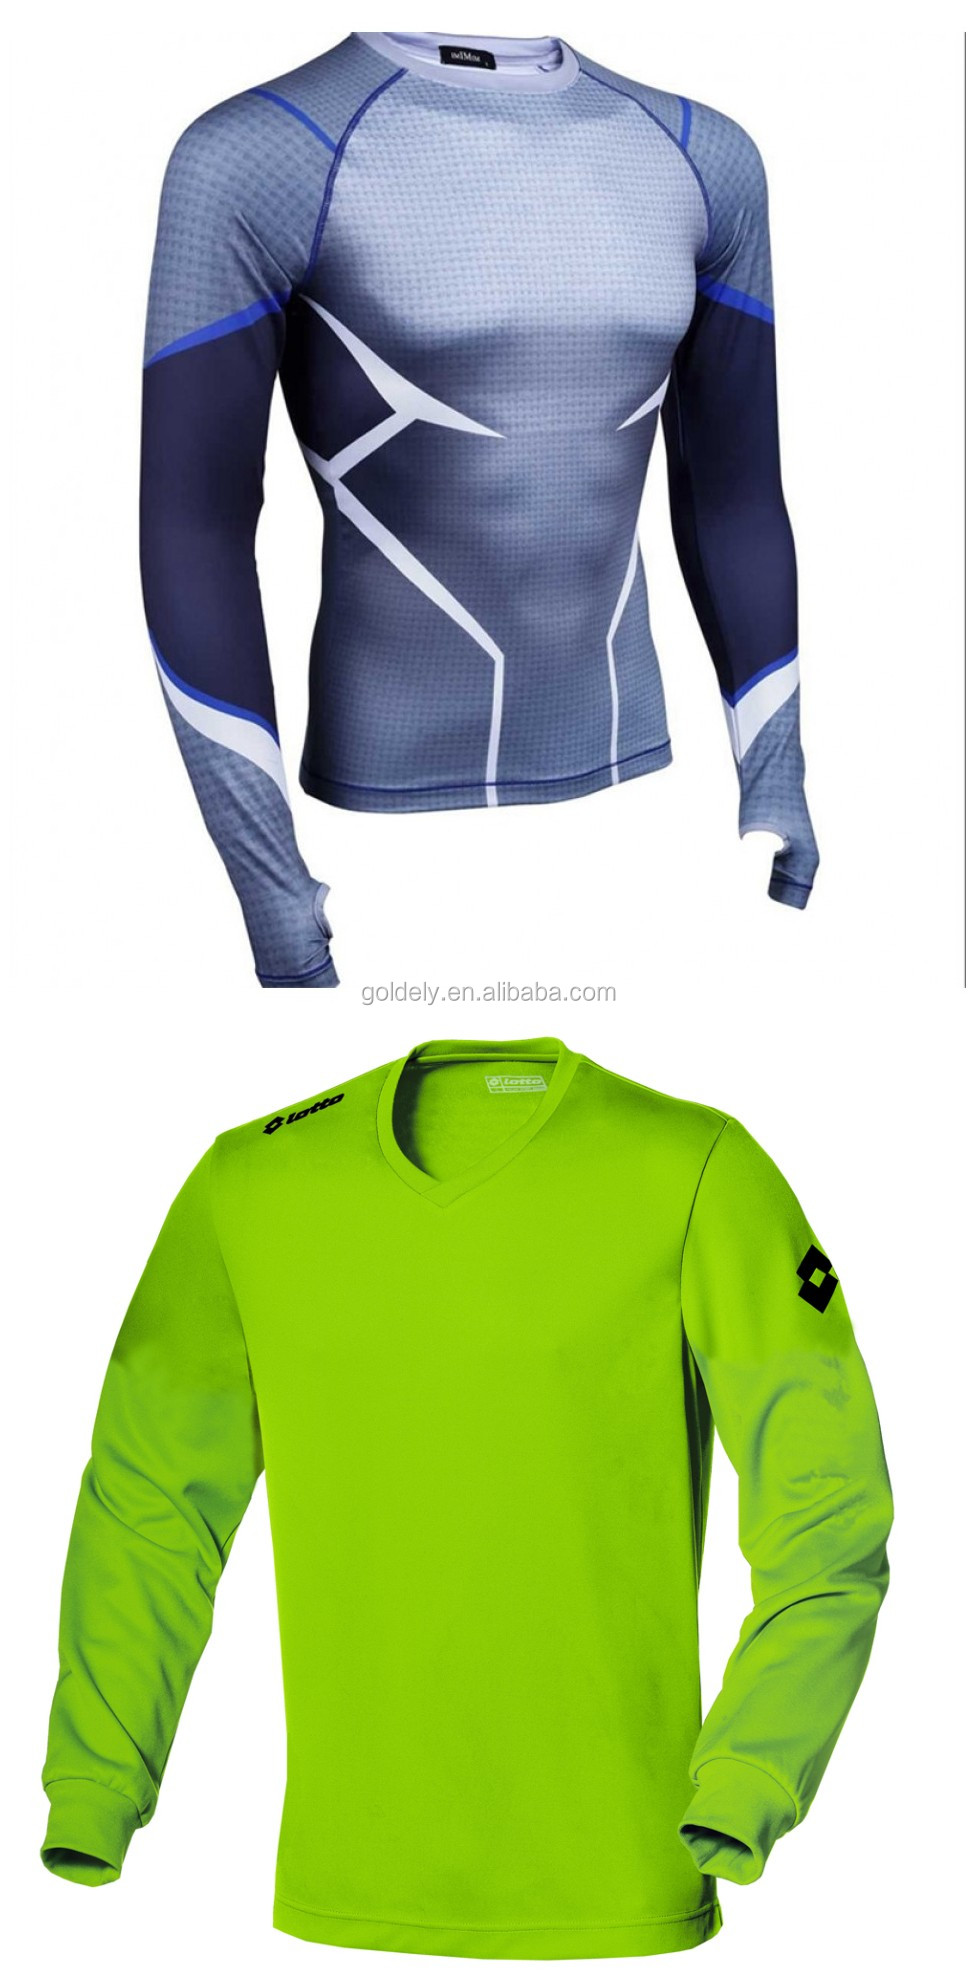 timper1hero_the_avengers_quicksilver_cosplaysport_tight_tops_cosplaytee_shirt01_.jpg